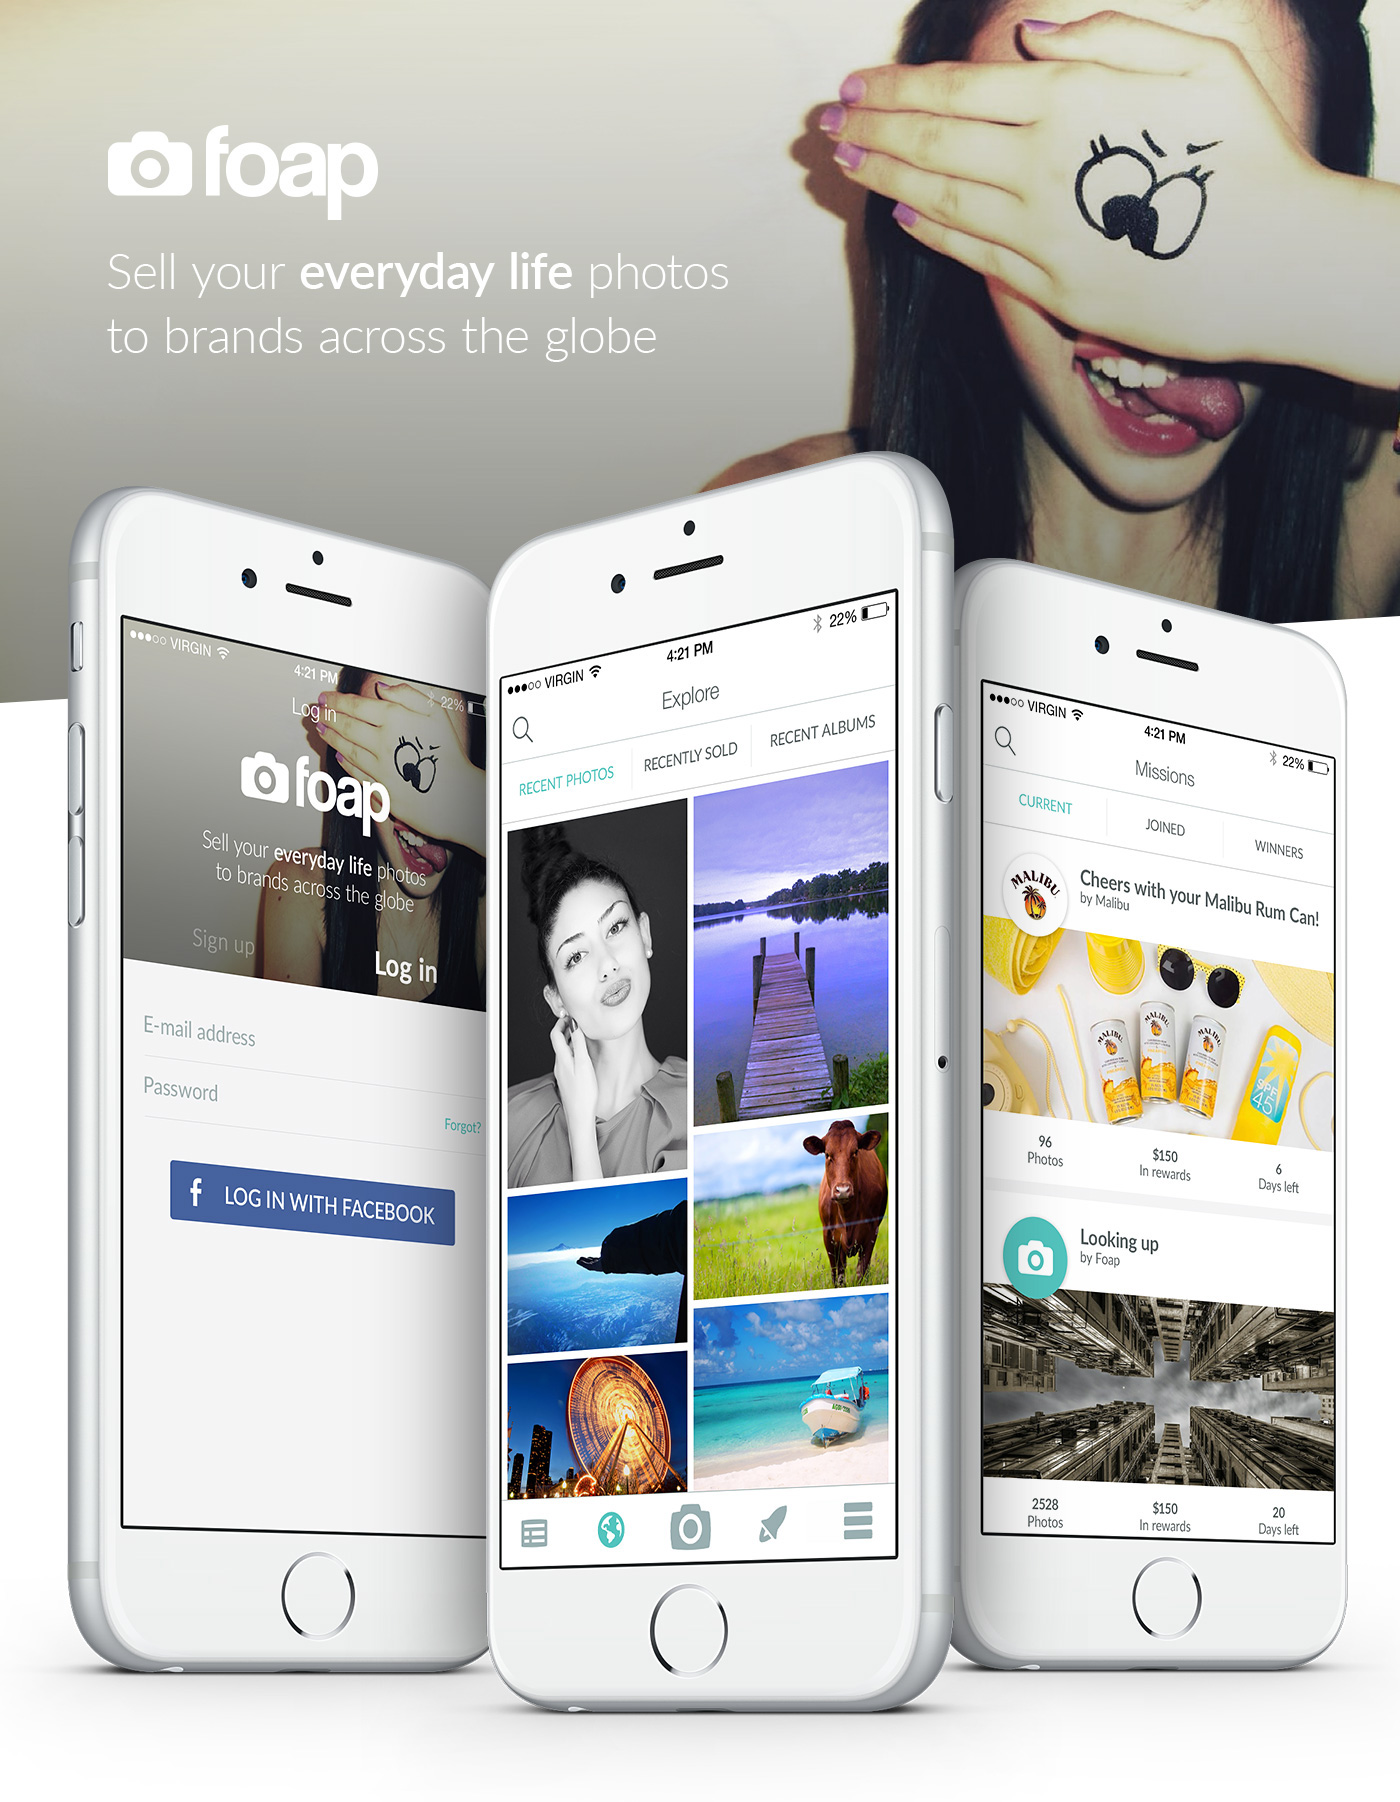 foap photo app application mobile Mobile app Mobile Application ios iphone android Icon sell photos smartphones material material design